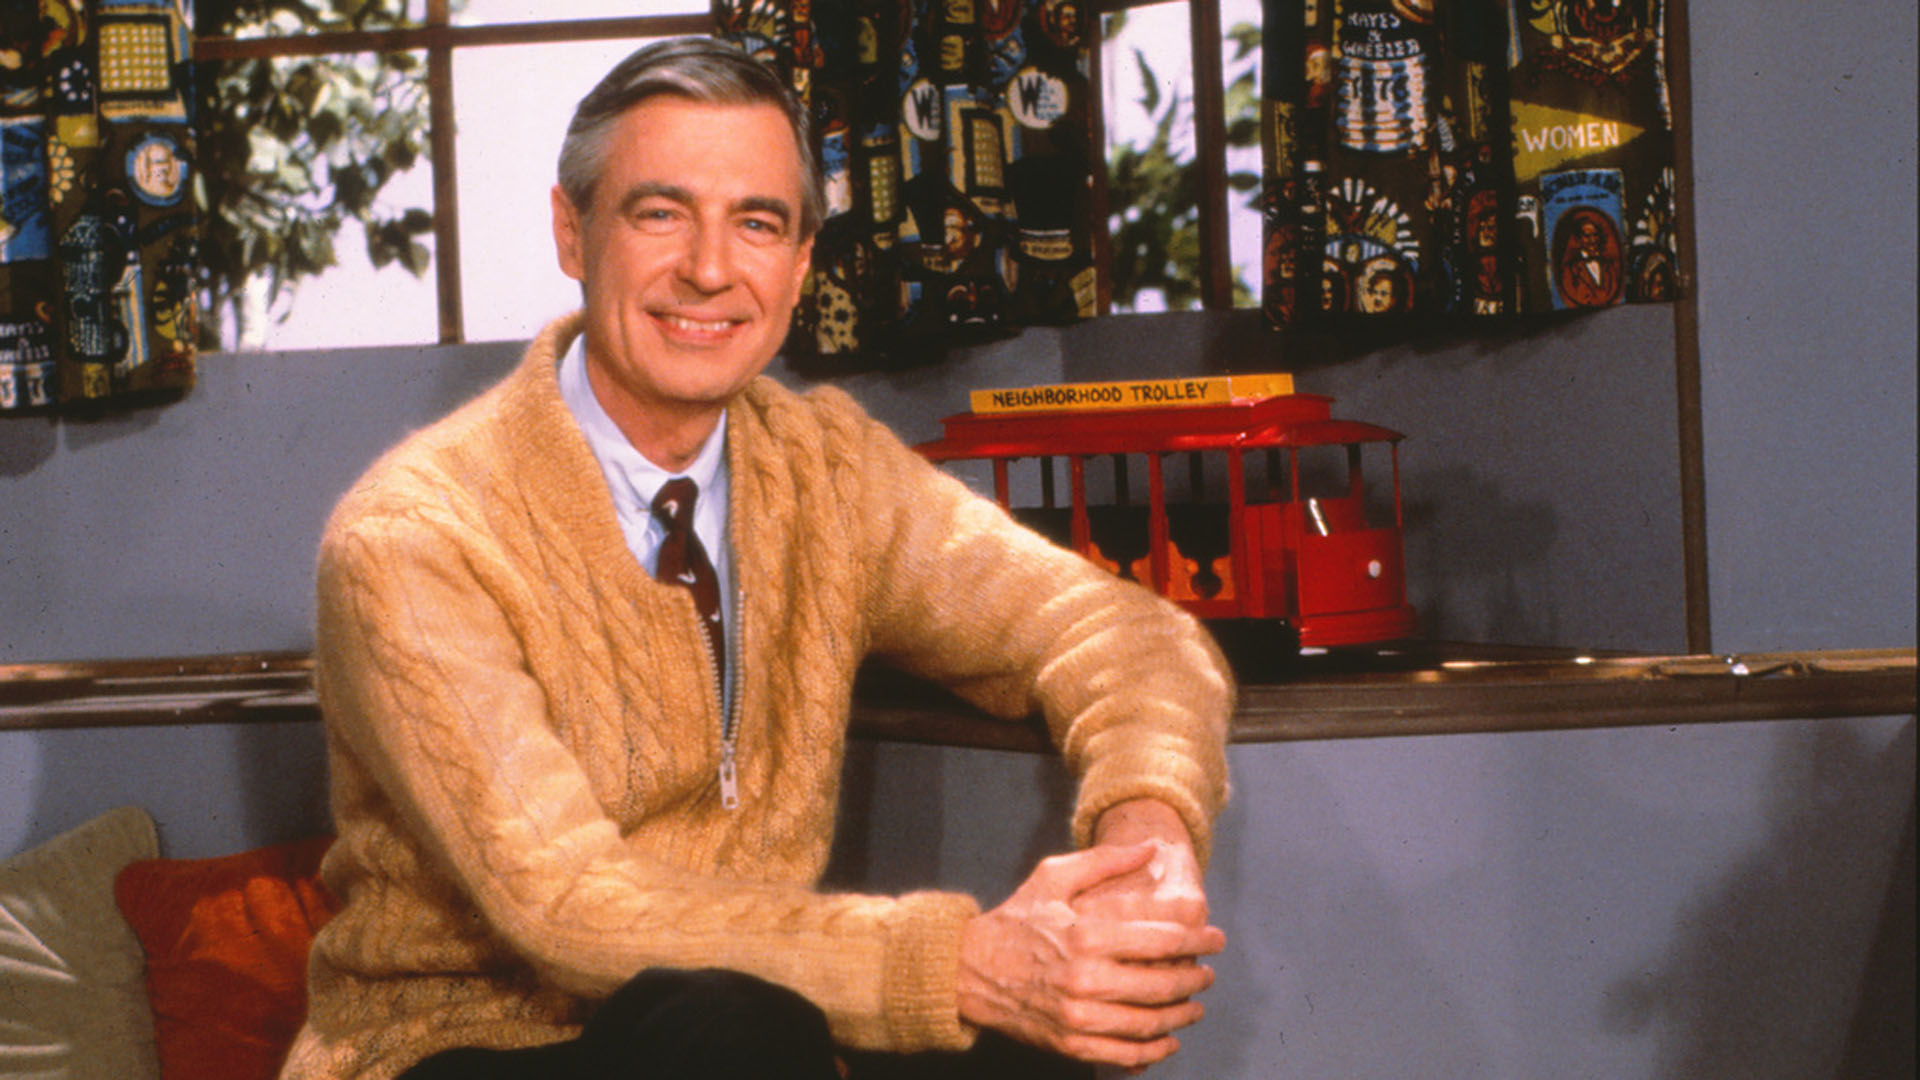 Mr Rogers On Suicide Anger And The Value Of Quiet Tell Your Story With Evalogue Life